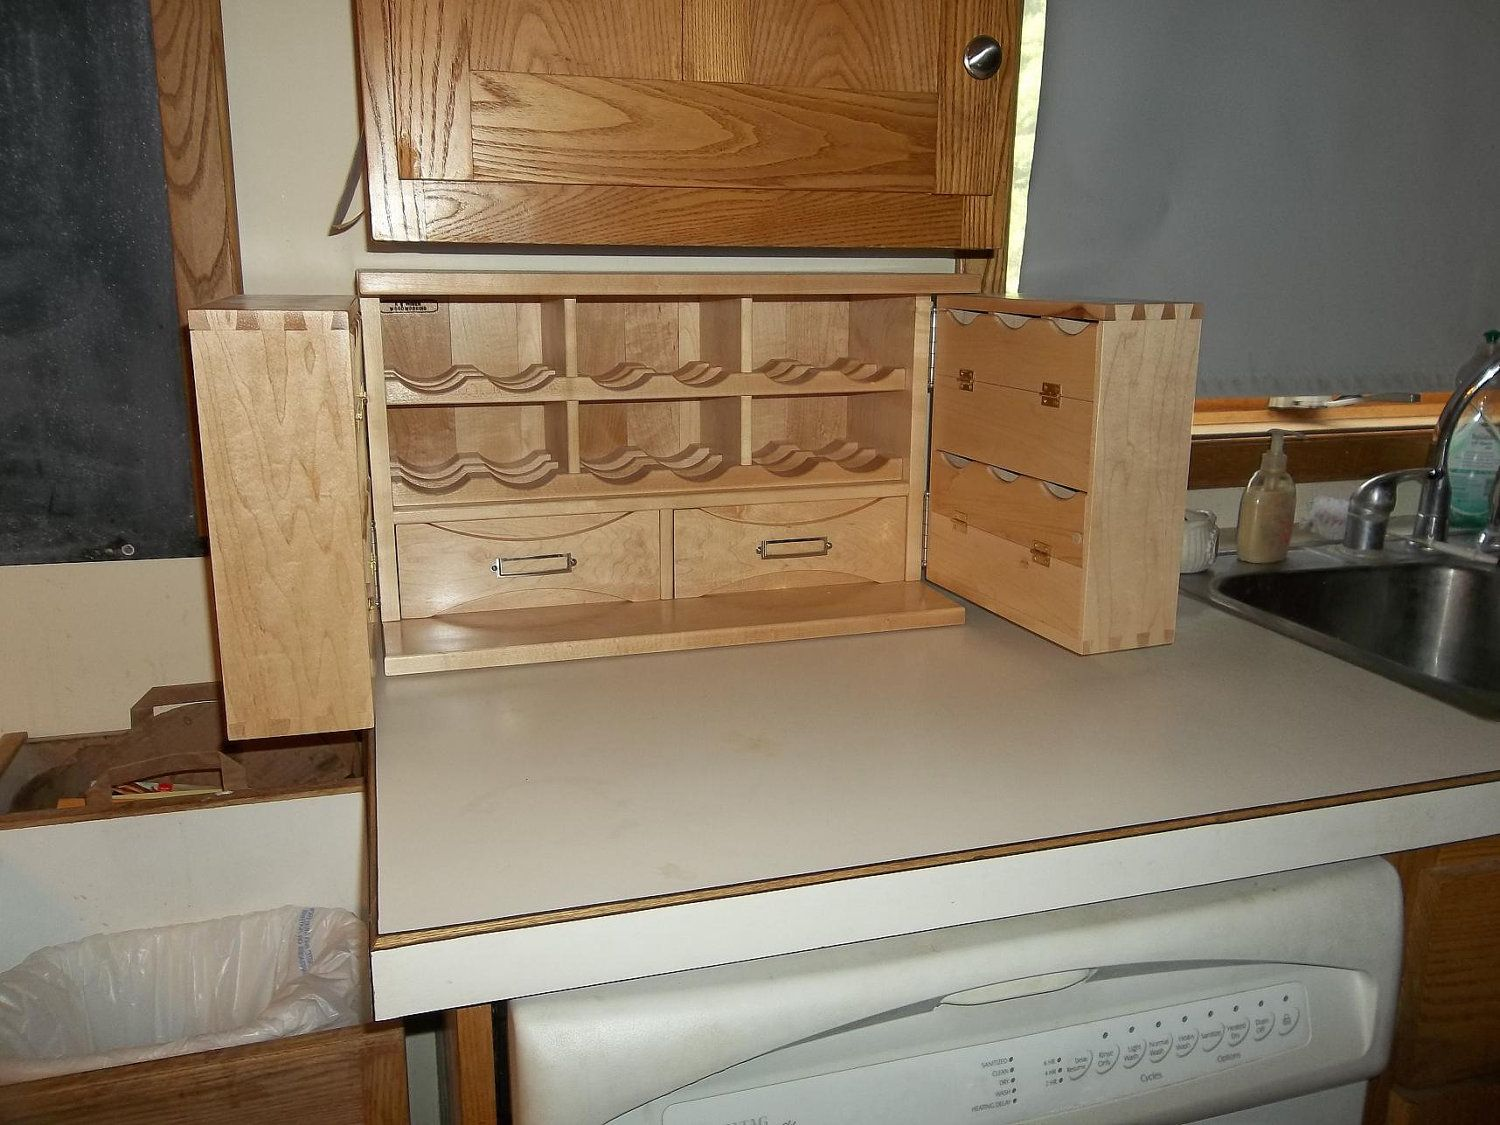 Small Countertop Tea Storage Cabinet Made When Ordered With